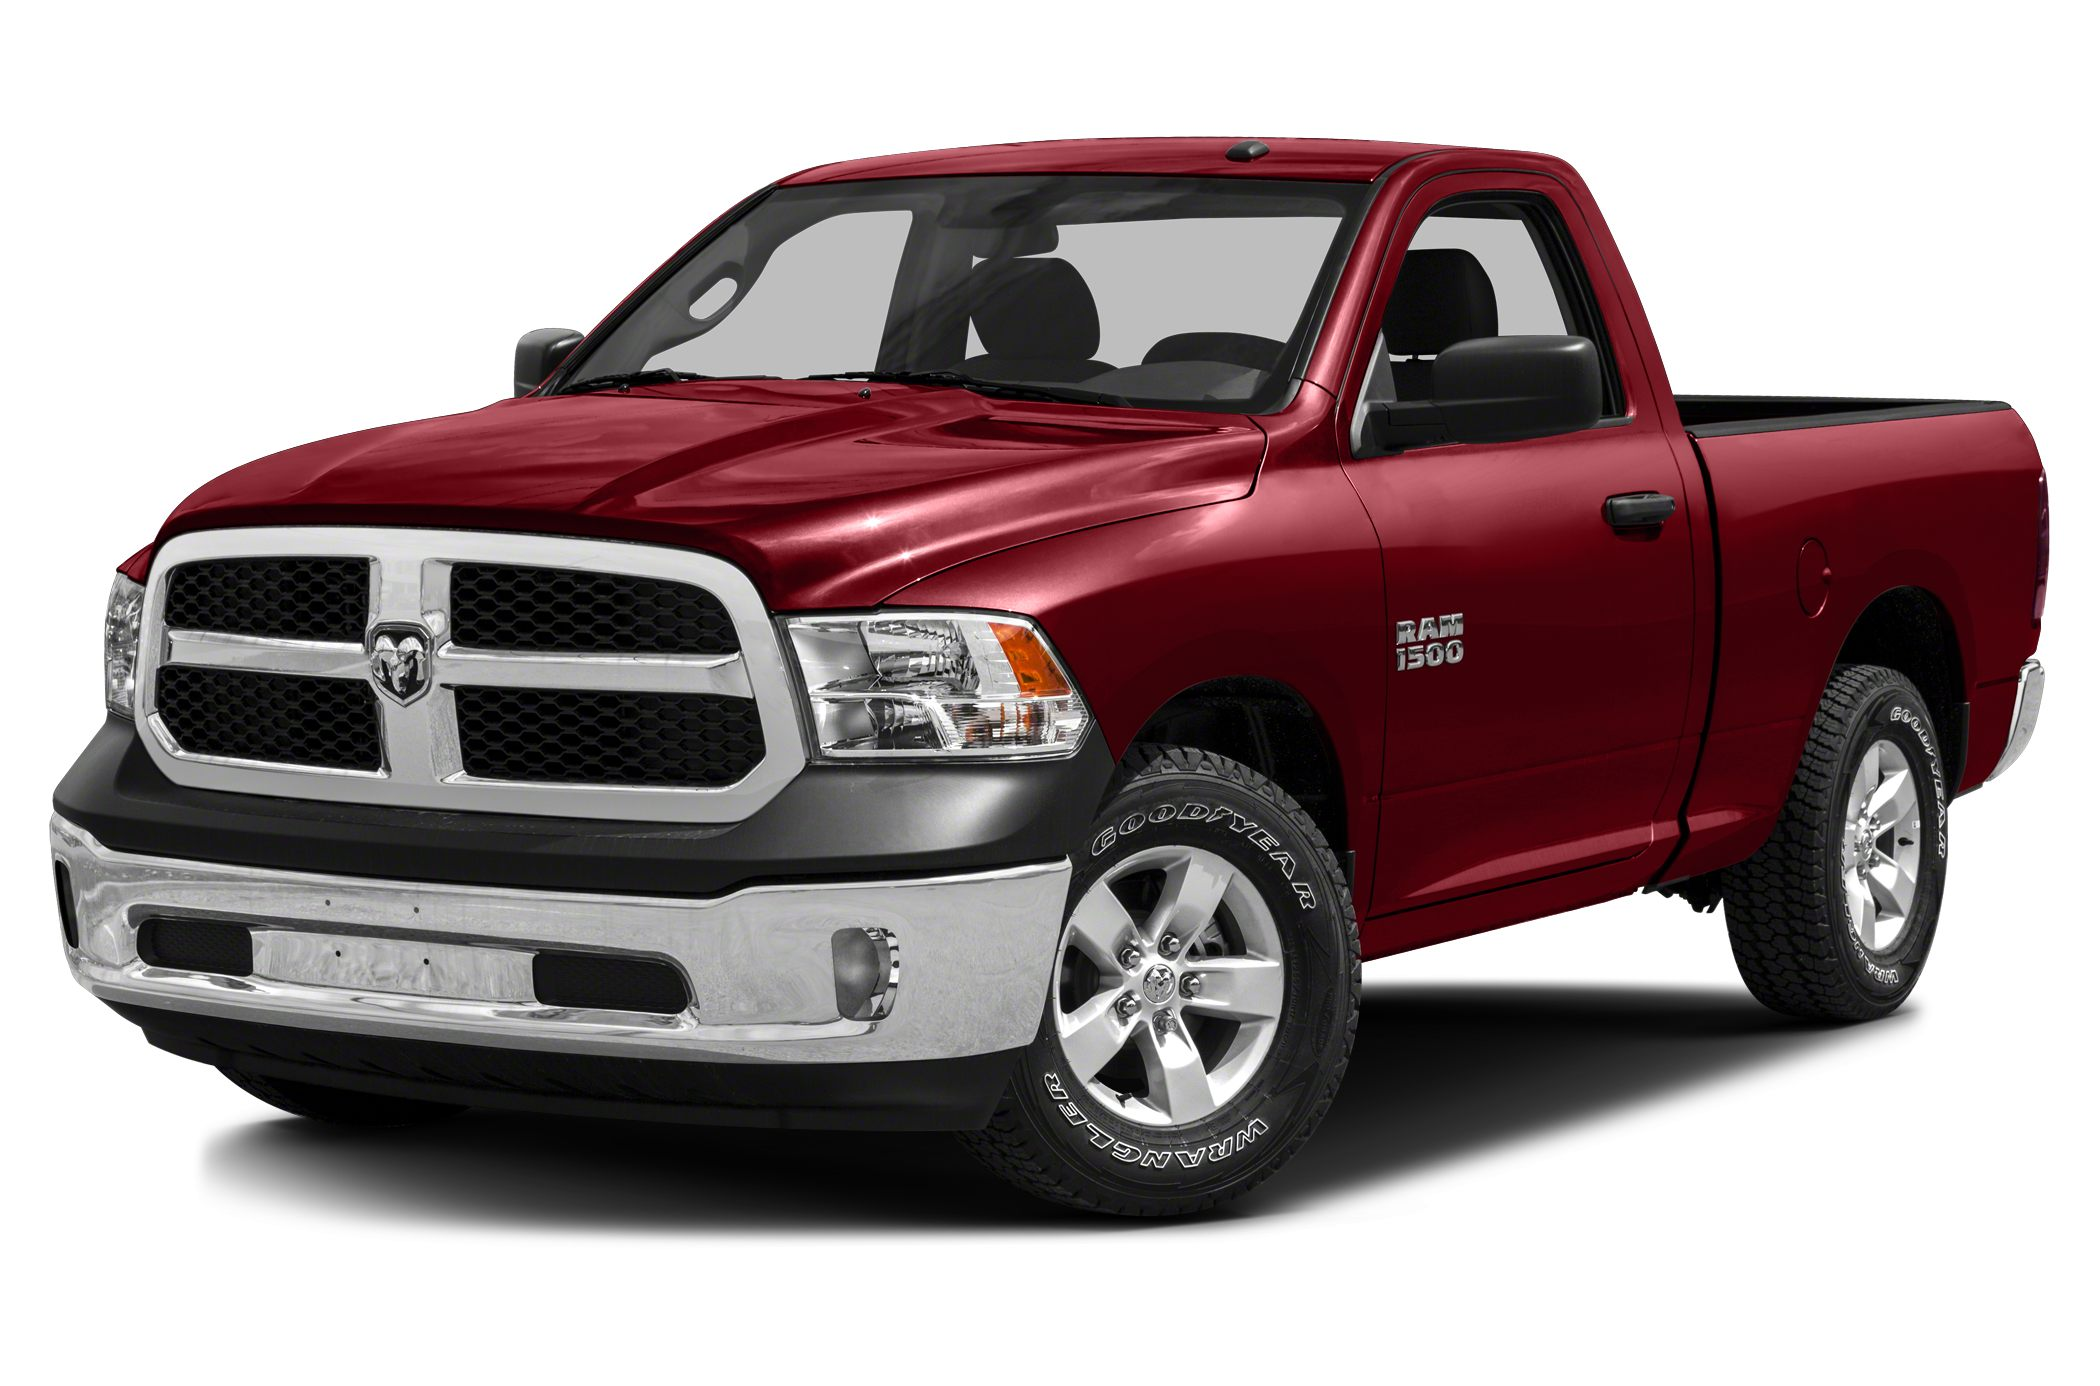 2014 ram 1500 slt for sale vin 1c6rr6lt6es